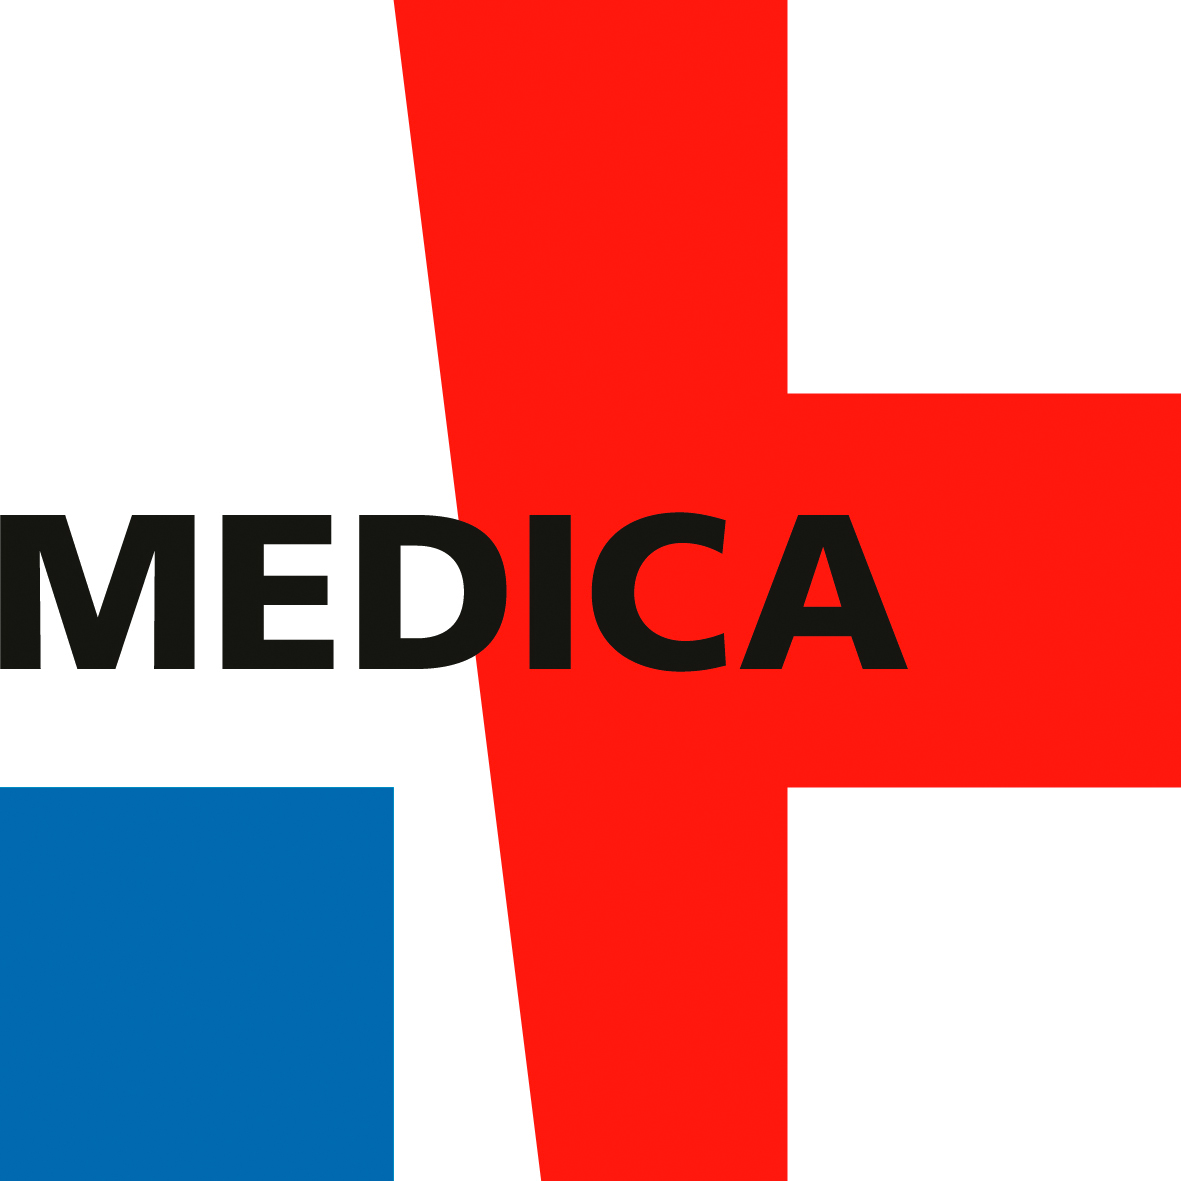 https://www.medica.de/cgi-bin/md_medica/lib/all/lob/return_download.cgi/medica_logo_srgb.jpg?ticket=g_u_e_s_t&bid=13562&no_mime_type=0